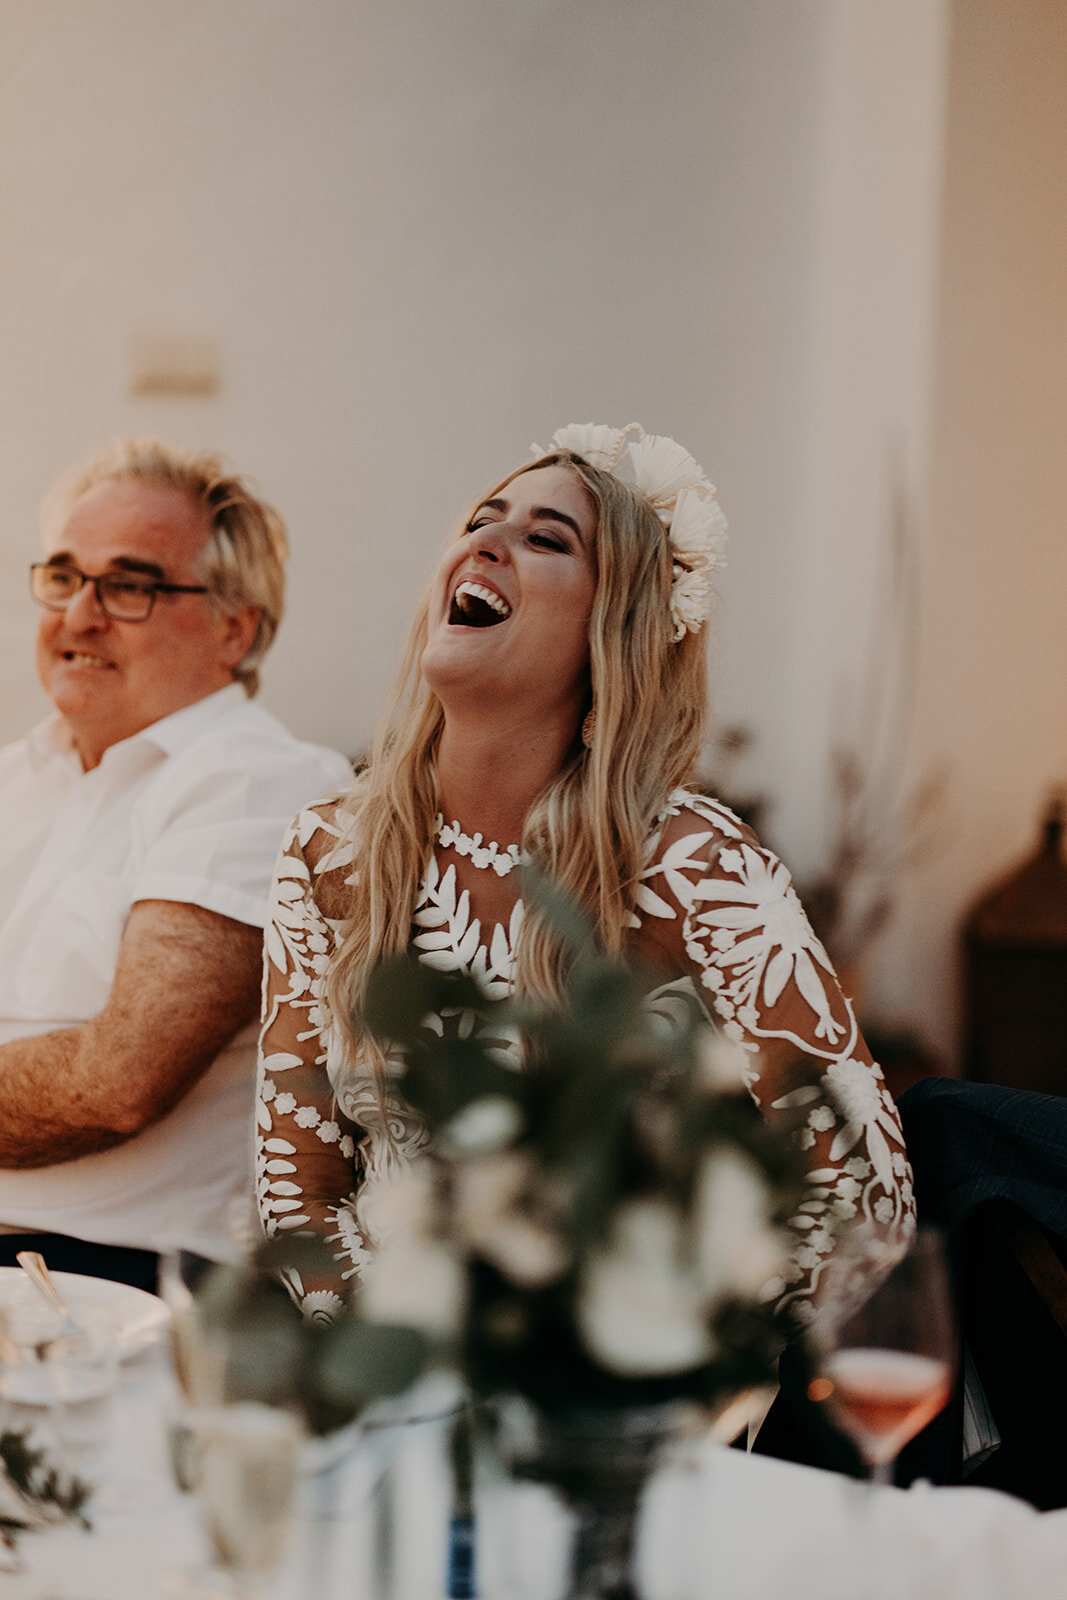 Bride - Lauren, Photography - Beatrice The Quirky